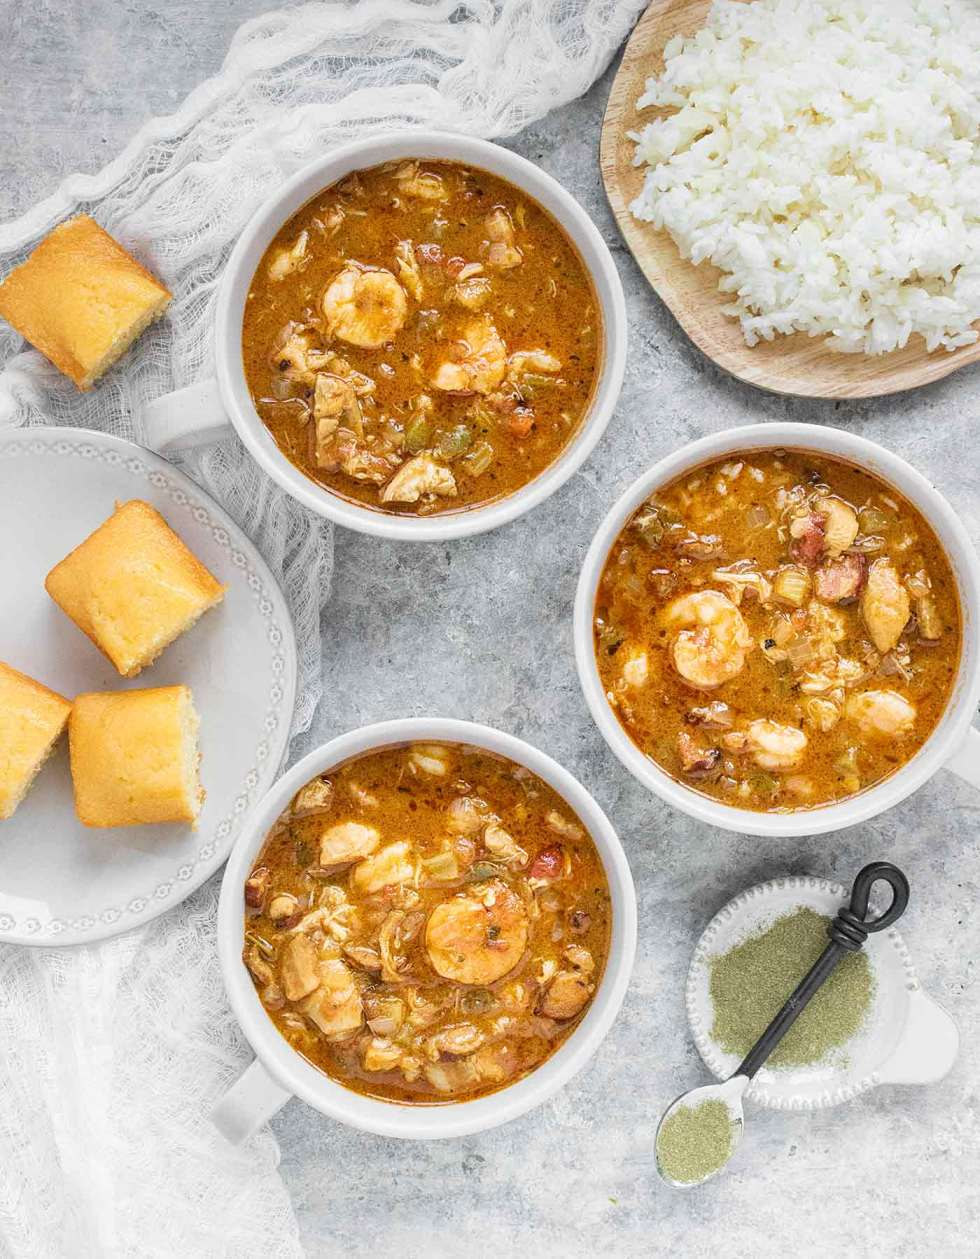 Three bowls of chicken seafood sausage gumbo, with a side of rice and cornbread, plus file powder